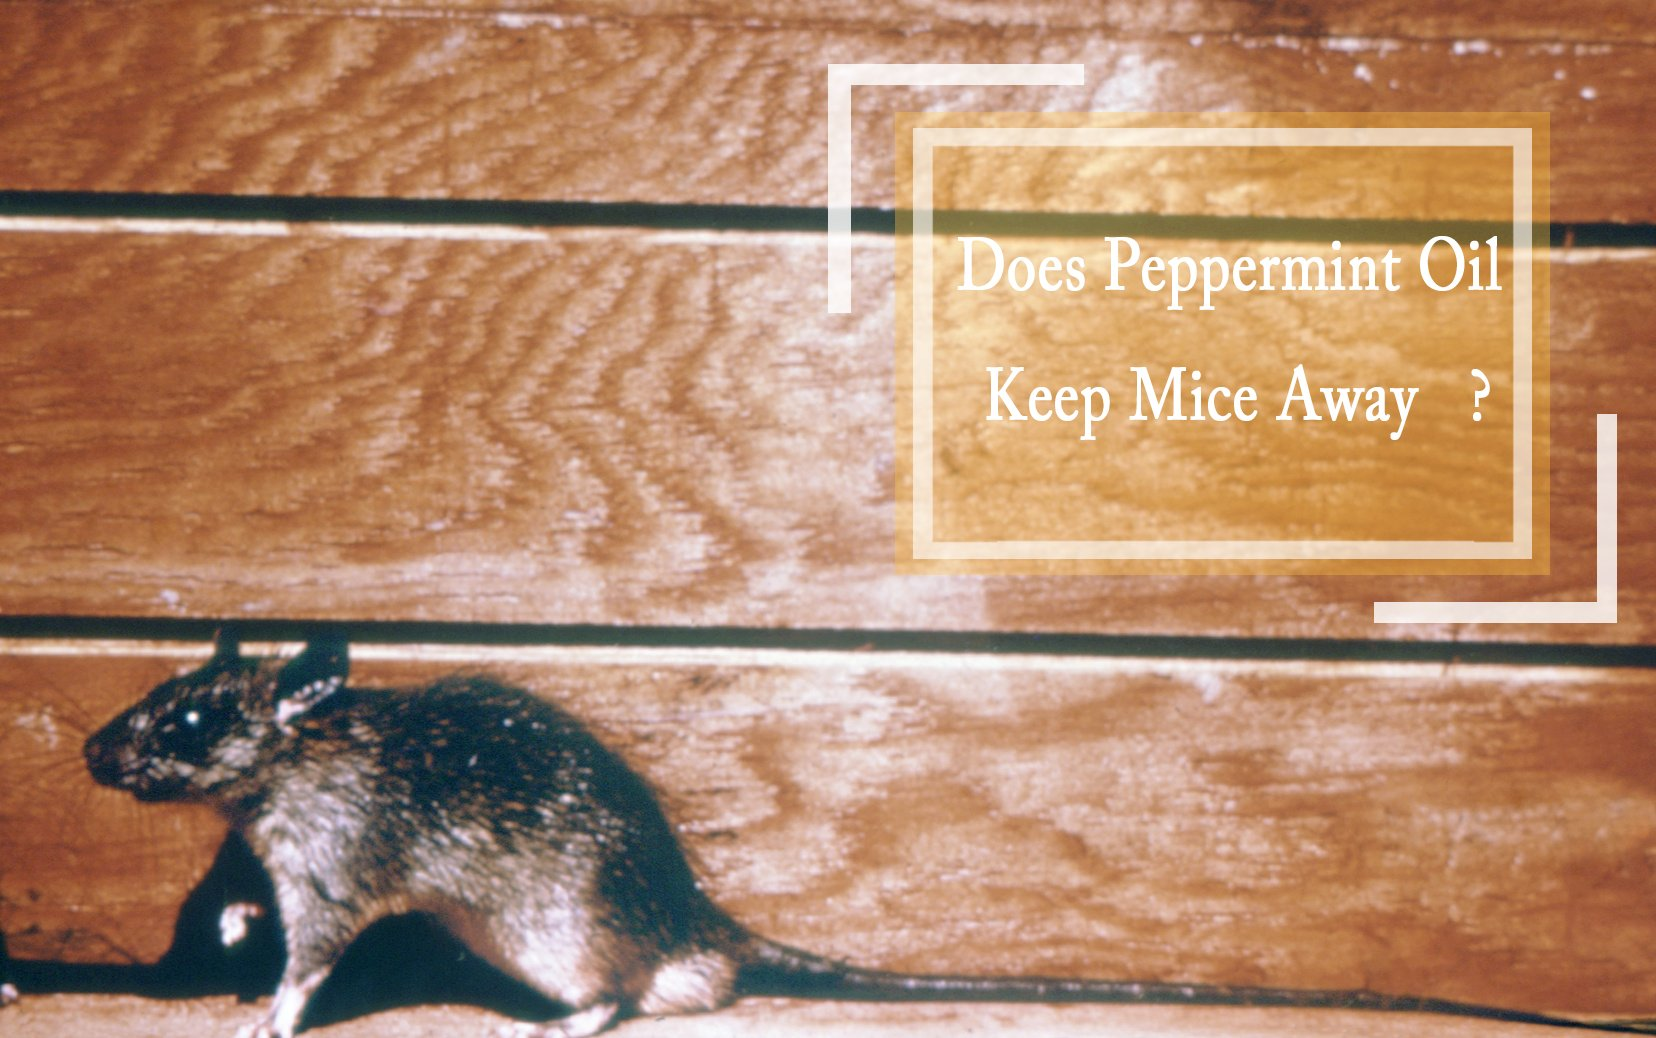 Does Peppermint Oil Keep Mice Away?